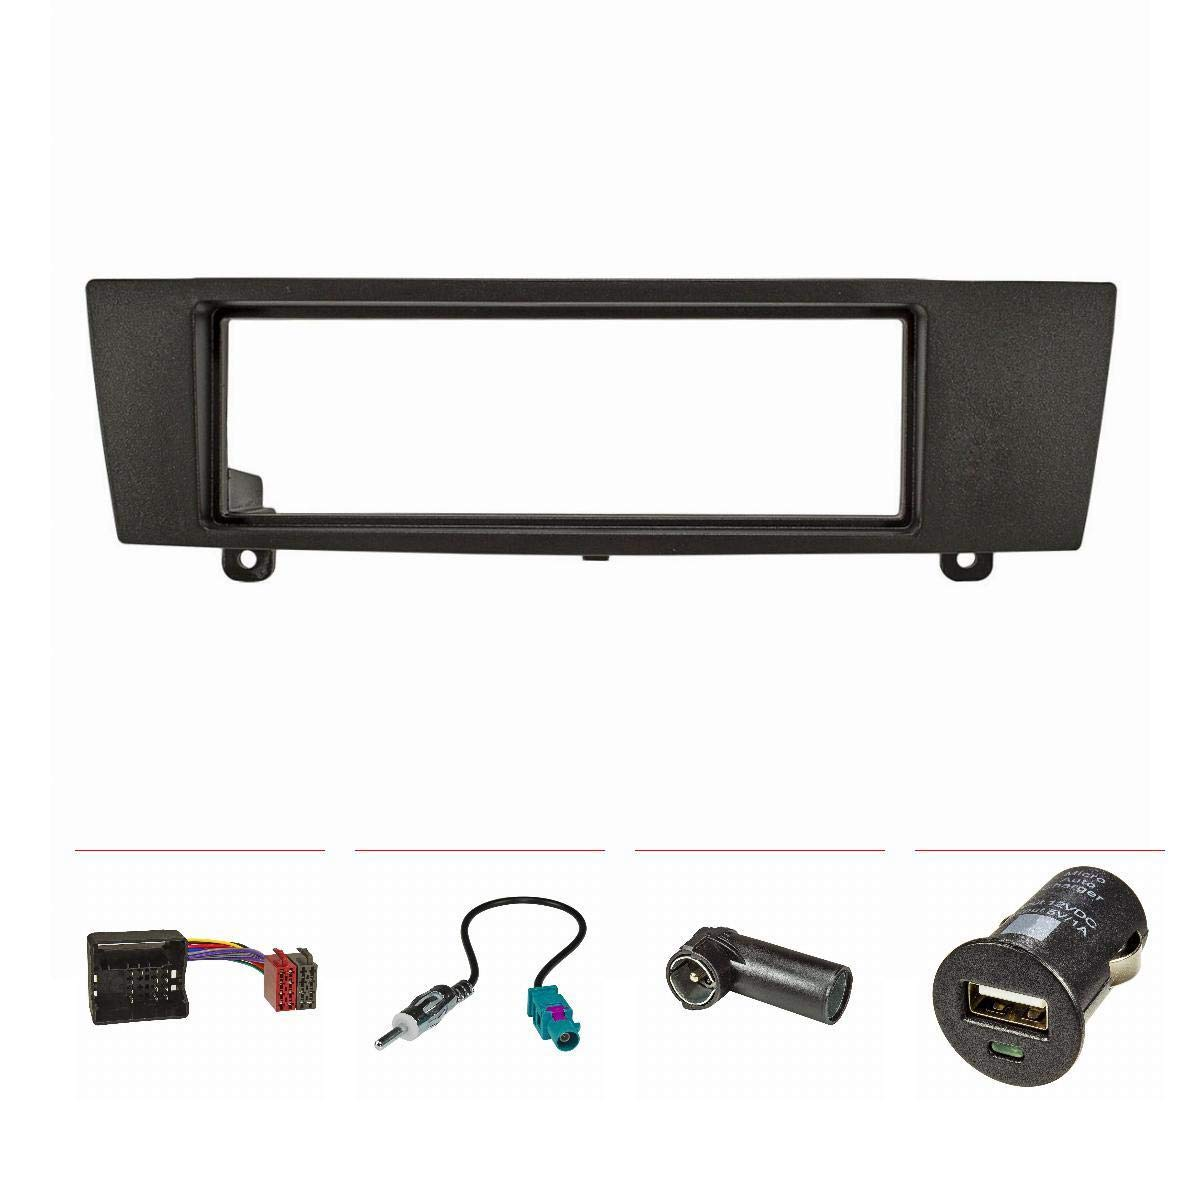 Tomzz Audio/® 2404-036 set con caricatore USB Z4 E89 Mascherina per autoradio per BMW Serie 1 E87 serie 3 E90 colore: nero